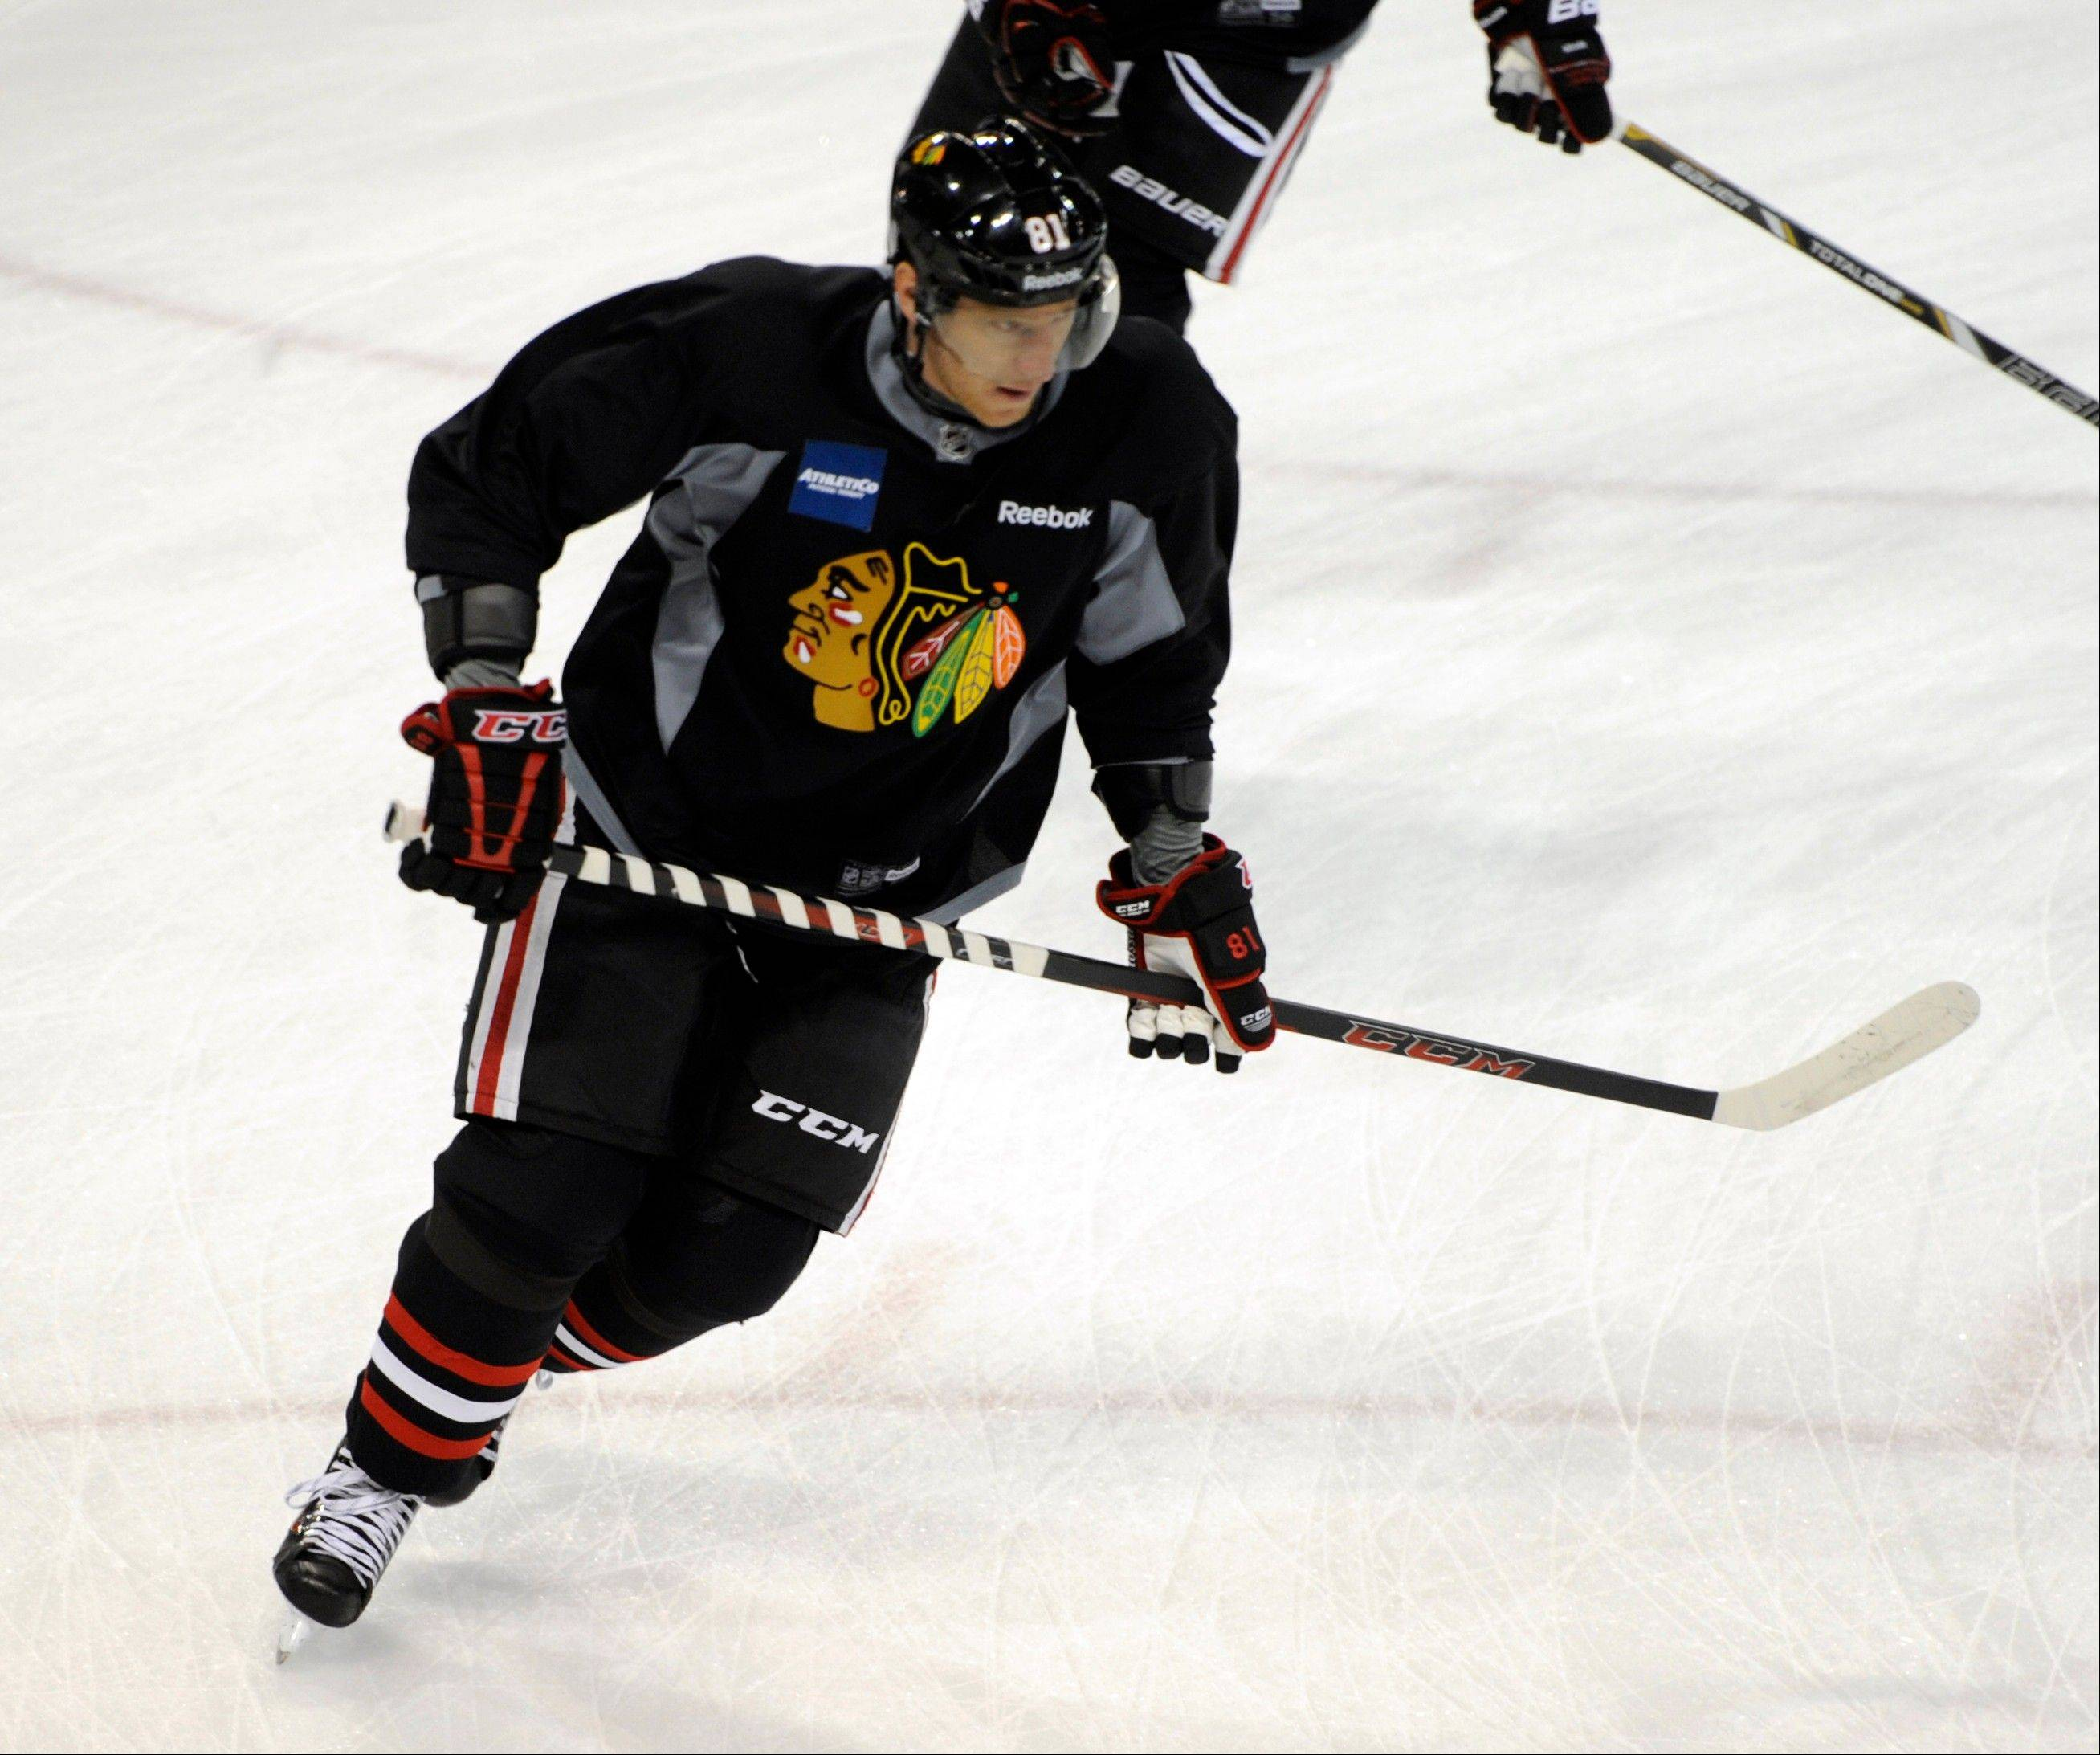 Marian Hossa says his back is in good shape and he's ready for a full training camp and contact.